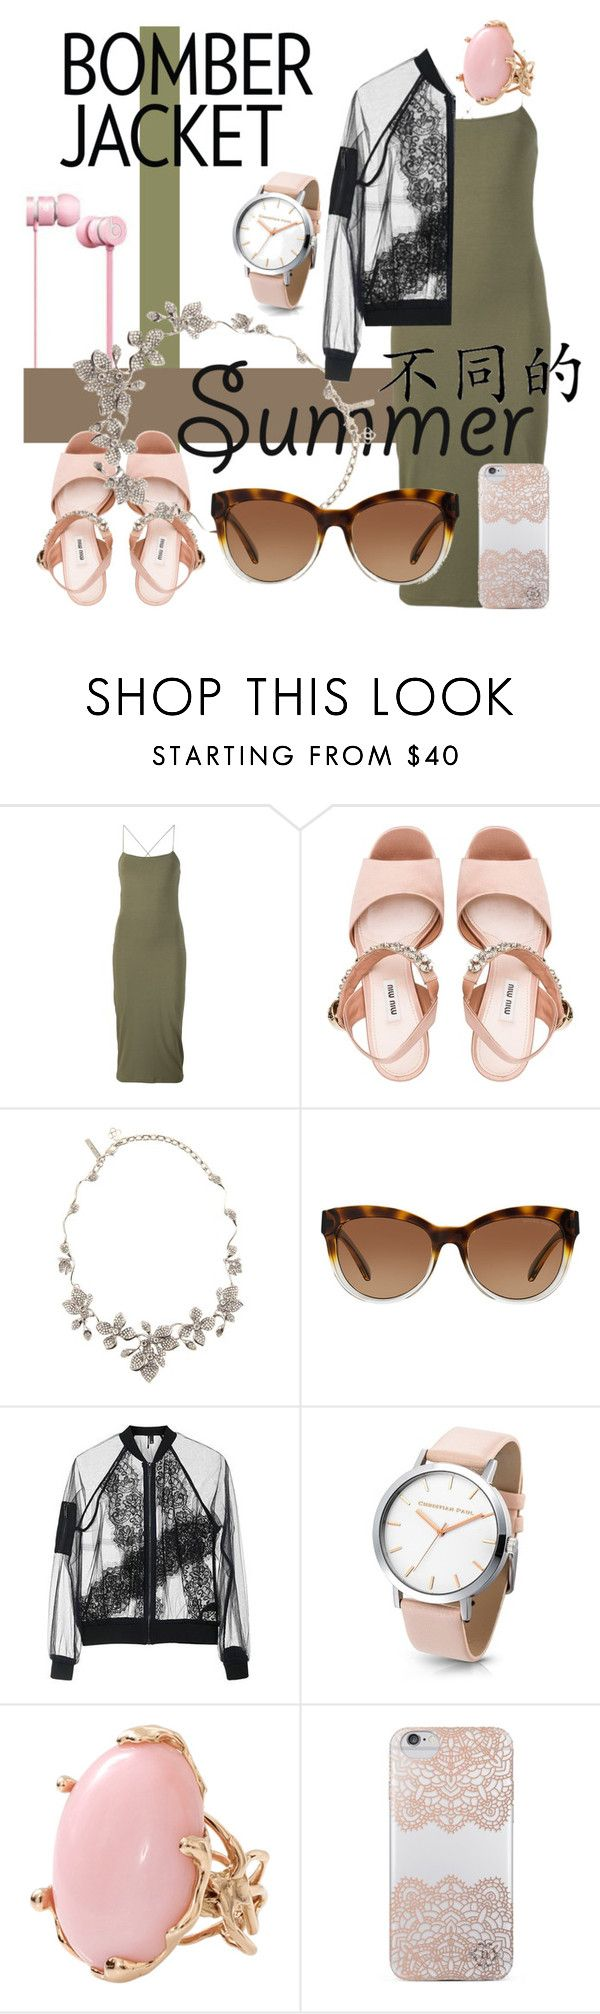 """Light Topping: Summer Bomber Jackets"" by crystal-imz ❤ liked on Polyvore featuring T By Alexander Wang, Miu Miu, Oscar de la Renta, Michael Kors, Topshop, Lucifer Vir Honestus, Nanette Lepore and bomberjackets"